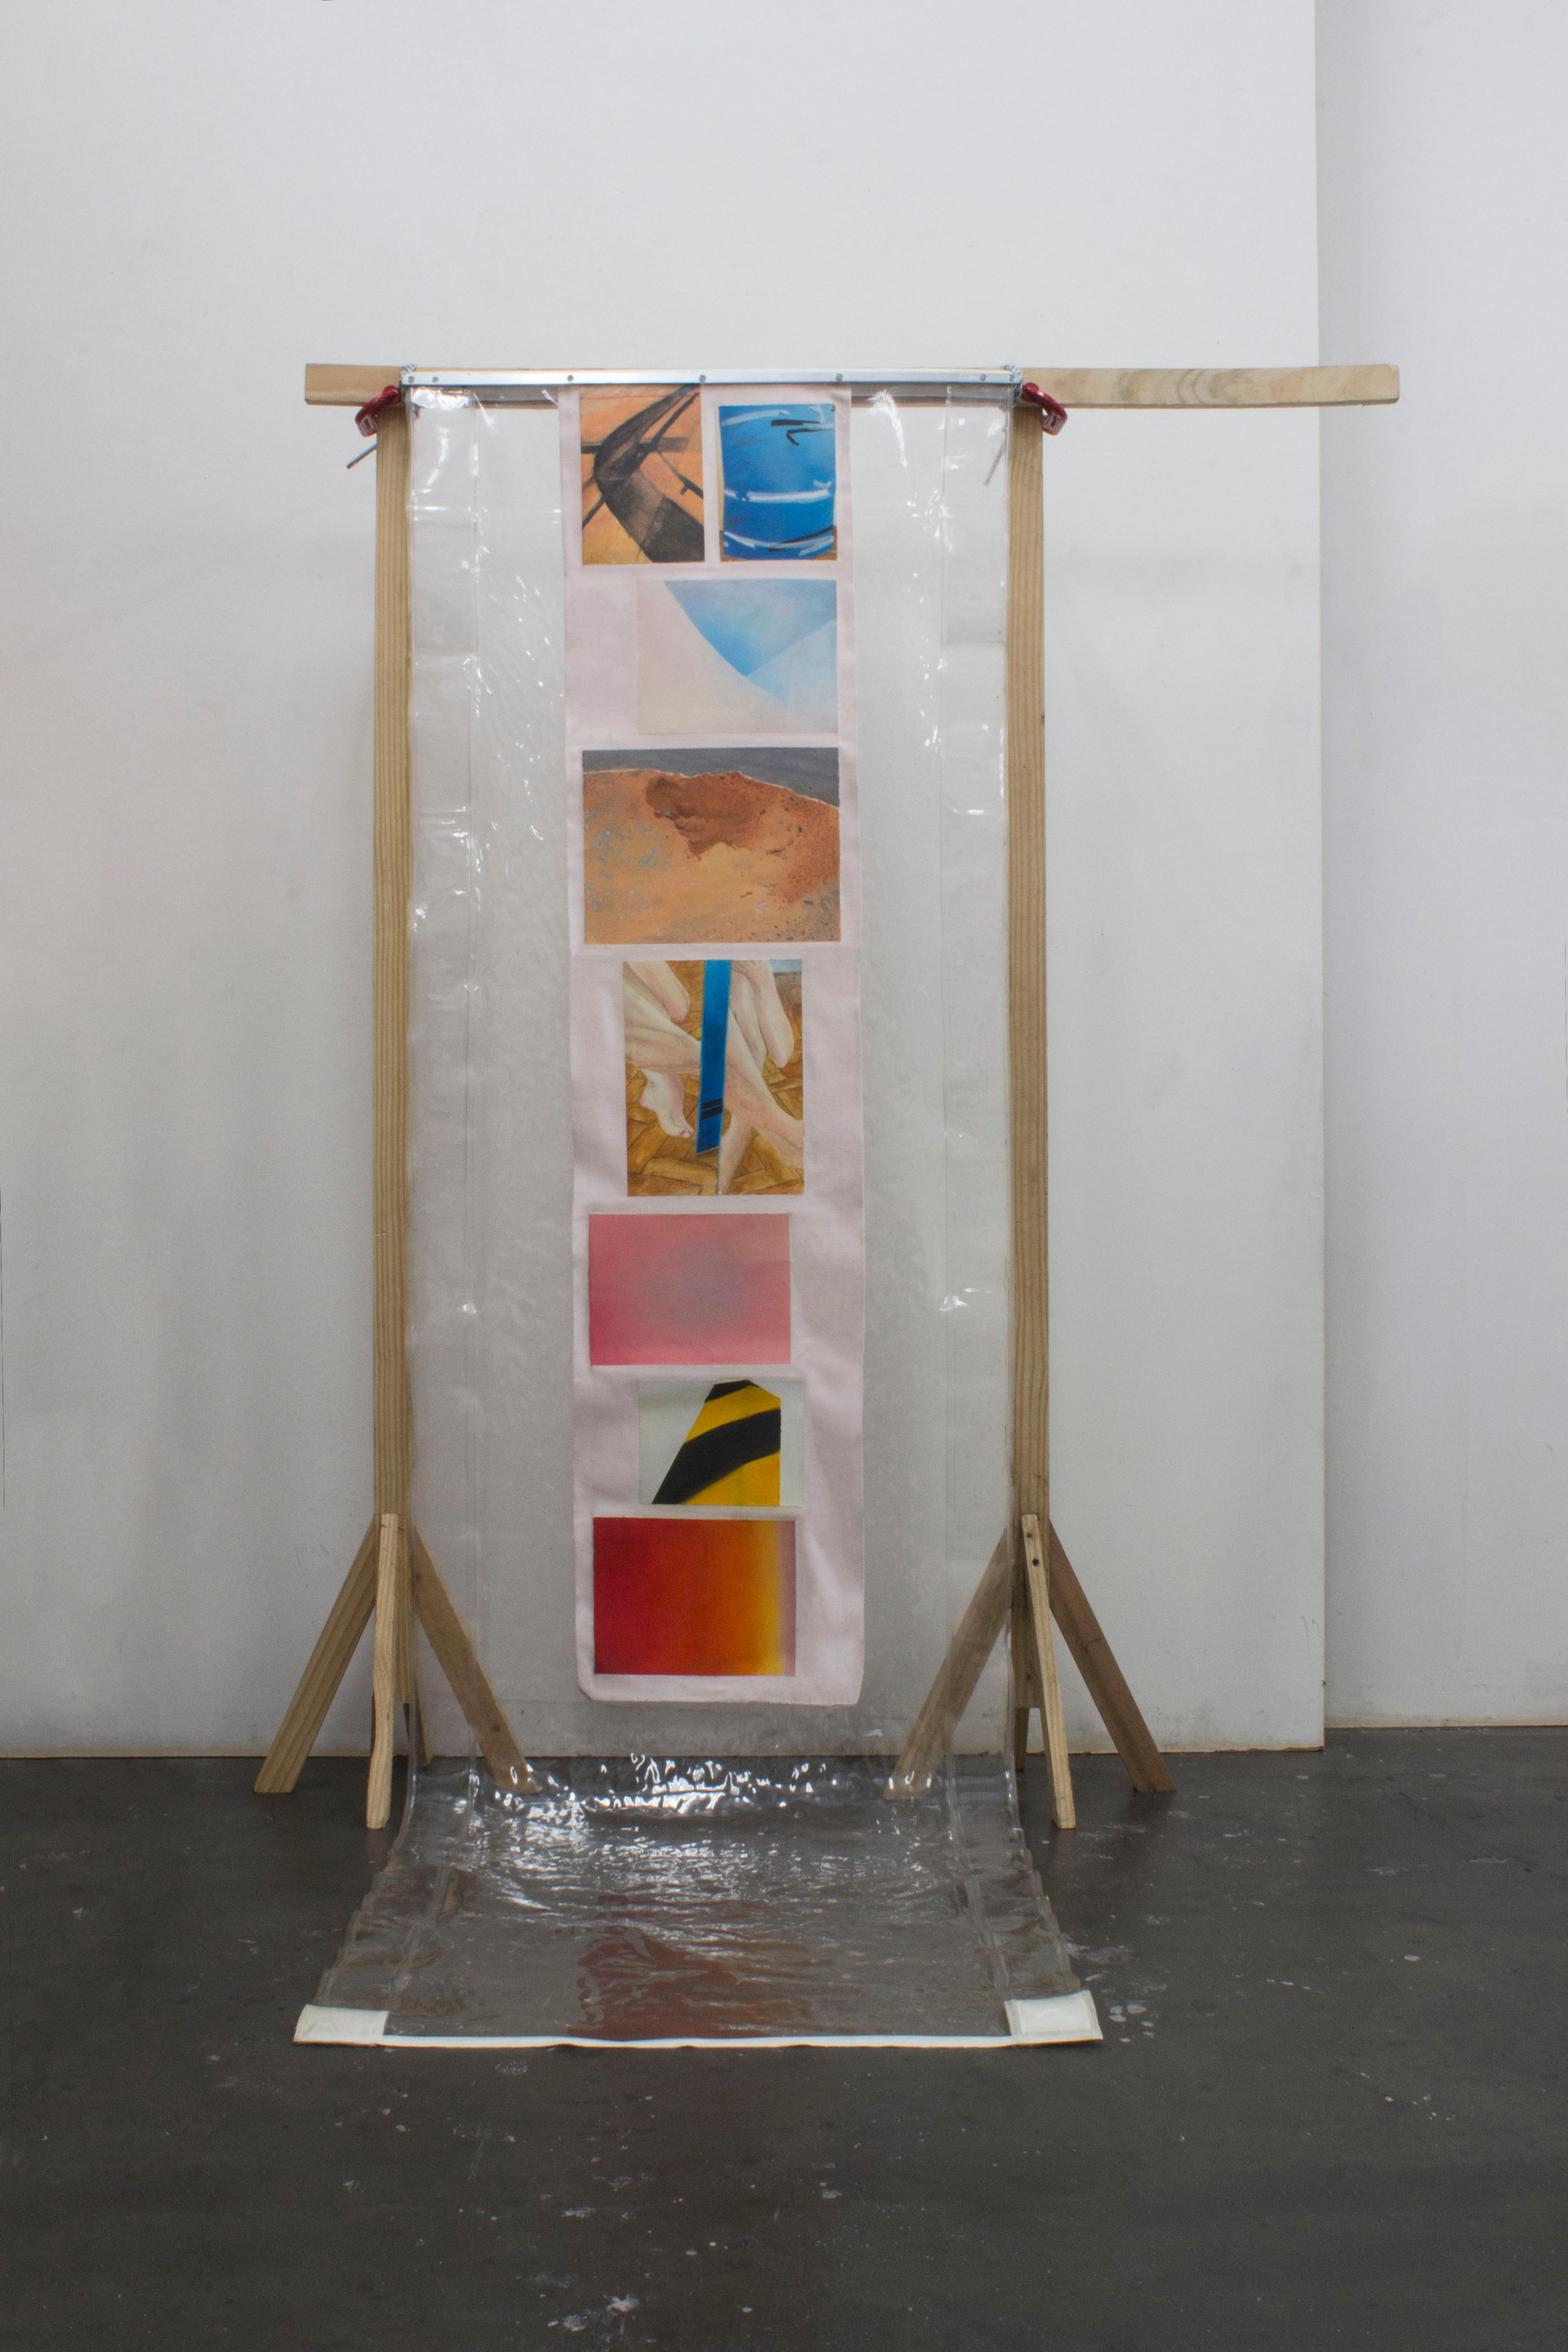 Waterfall, 2014 | Wooden tripods, plastic awning, sergeants, rope and oil painted images on canvas | 170 x 100 x 70 cm